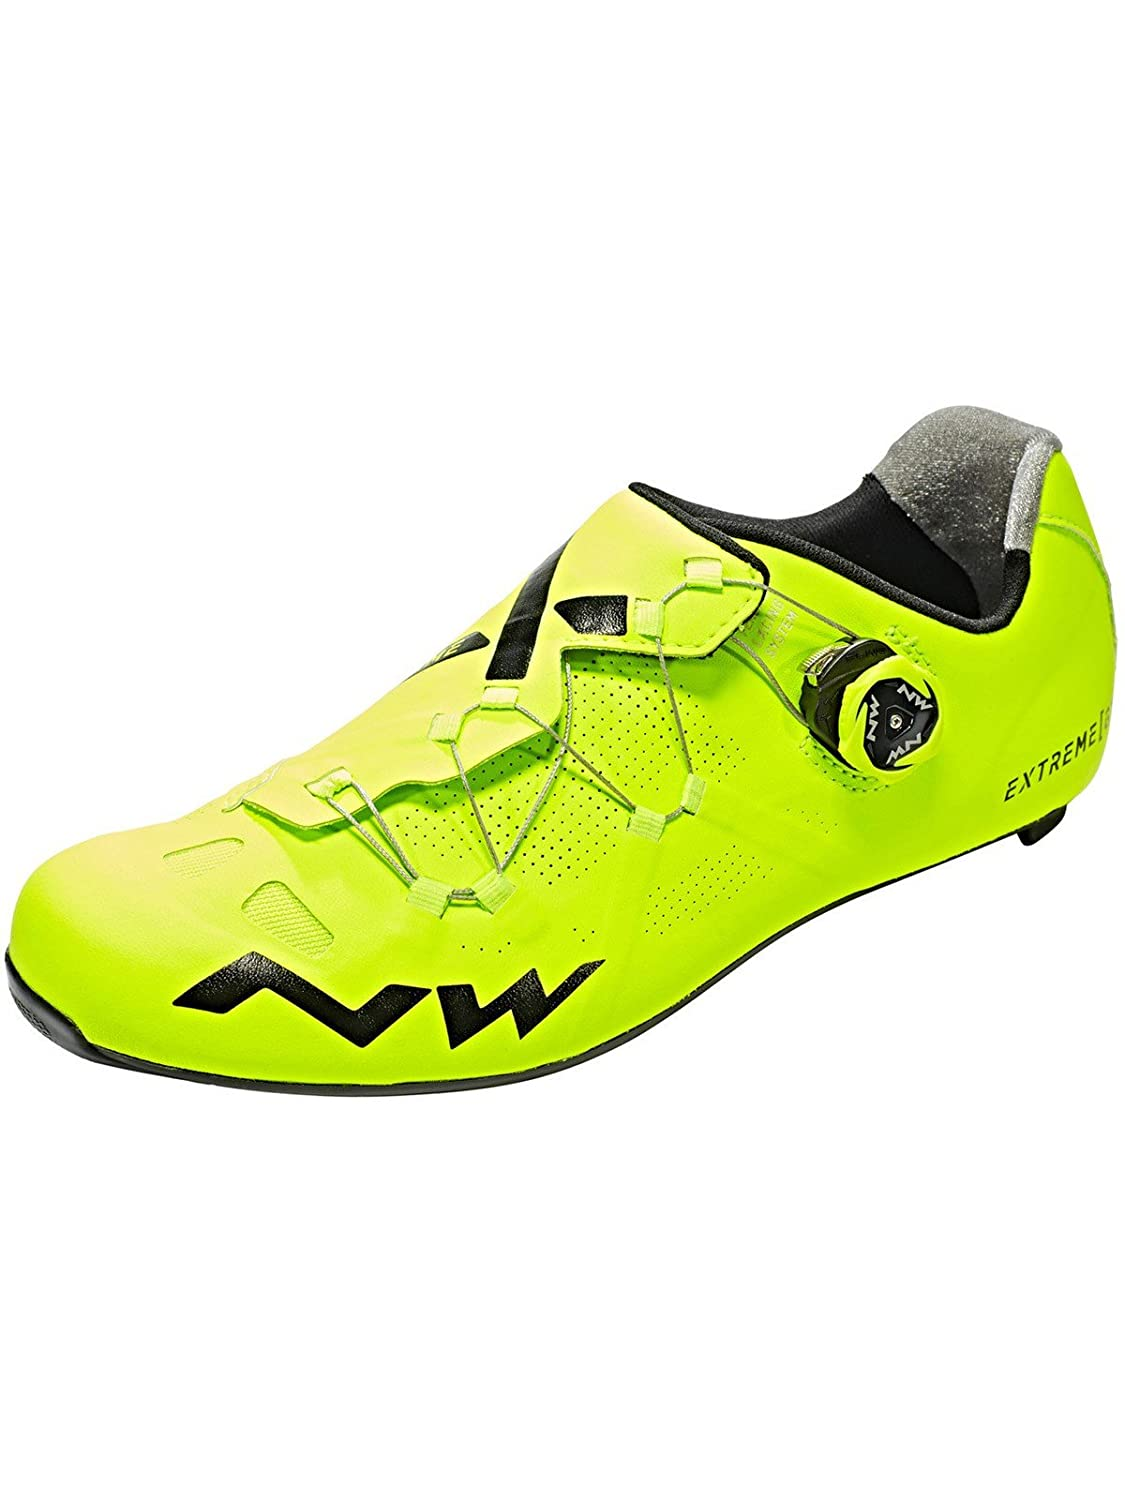 NORTHWAVE(ノースウェーブ) EXTREME GT YELLOW FLUO サイズ:44   B076R7QY5Z